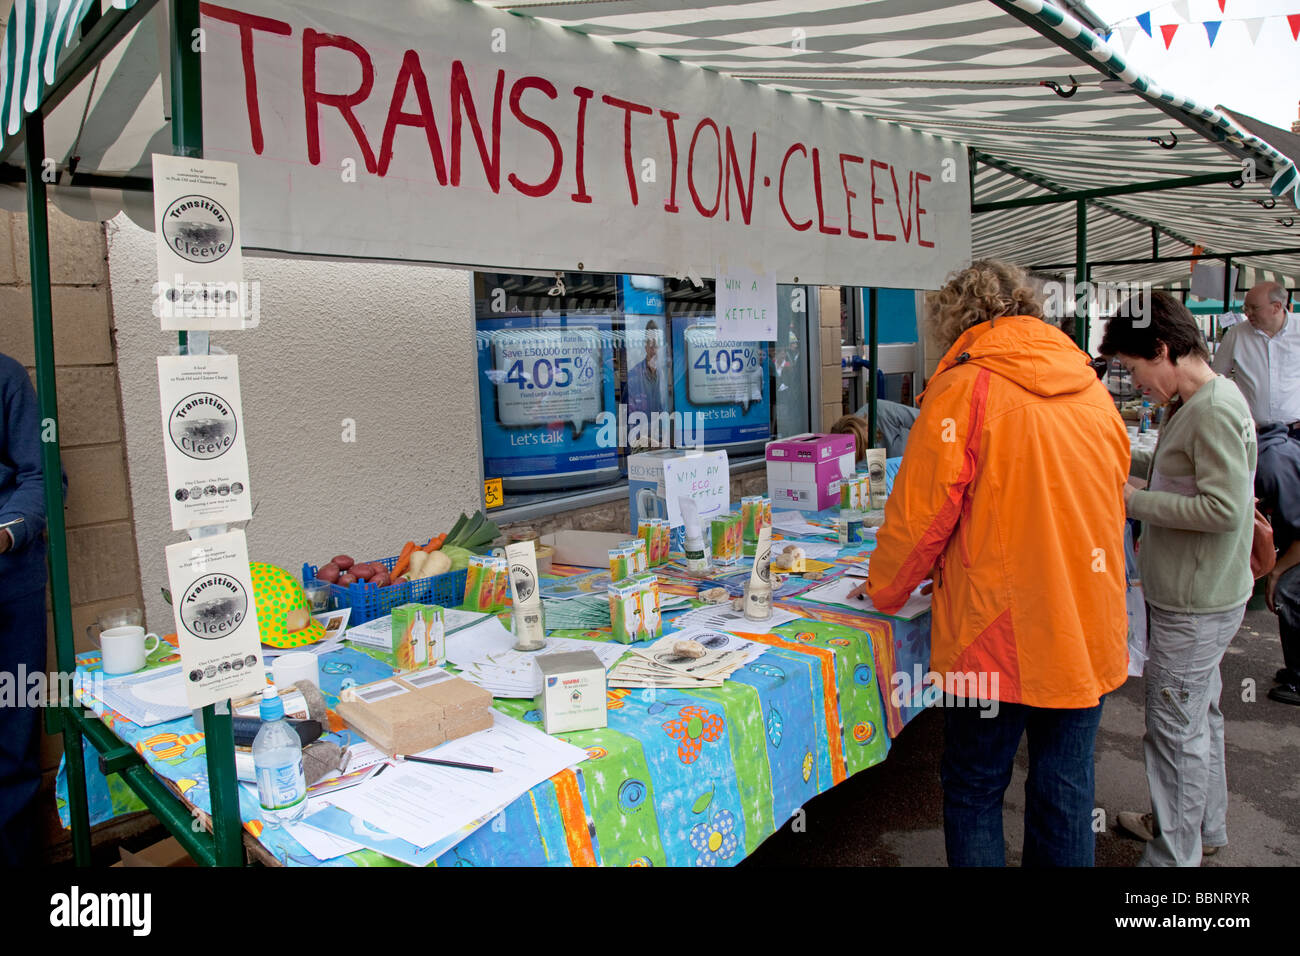 Transition Cleeve stall at Street Fair Bishops Cleeve June 2009 UK - Stock Image